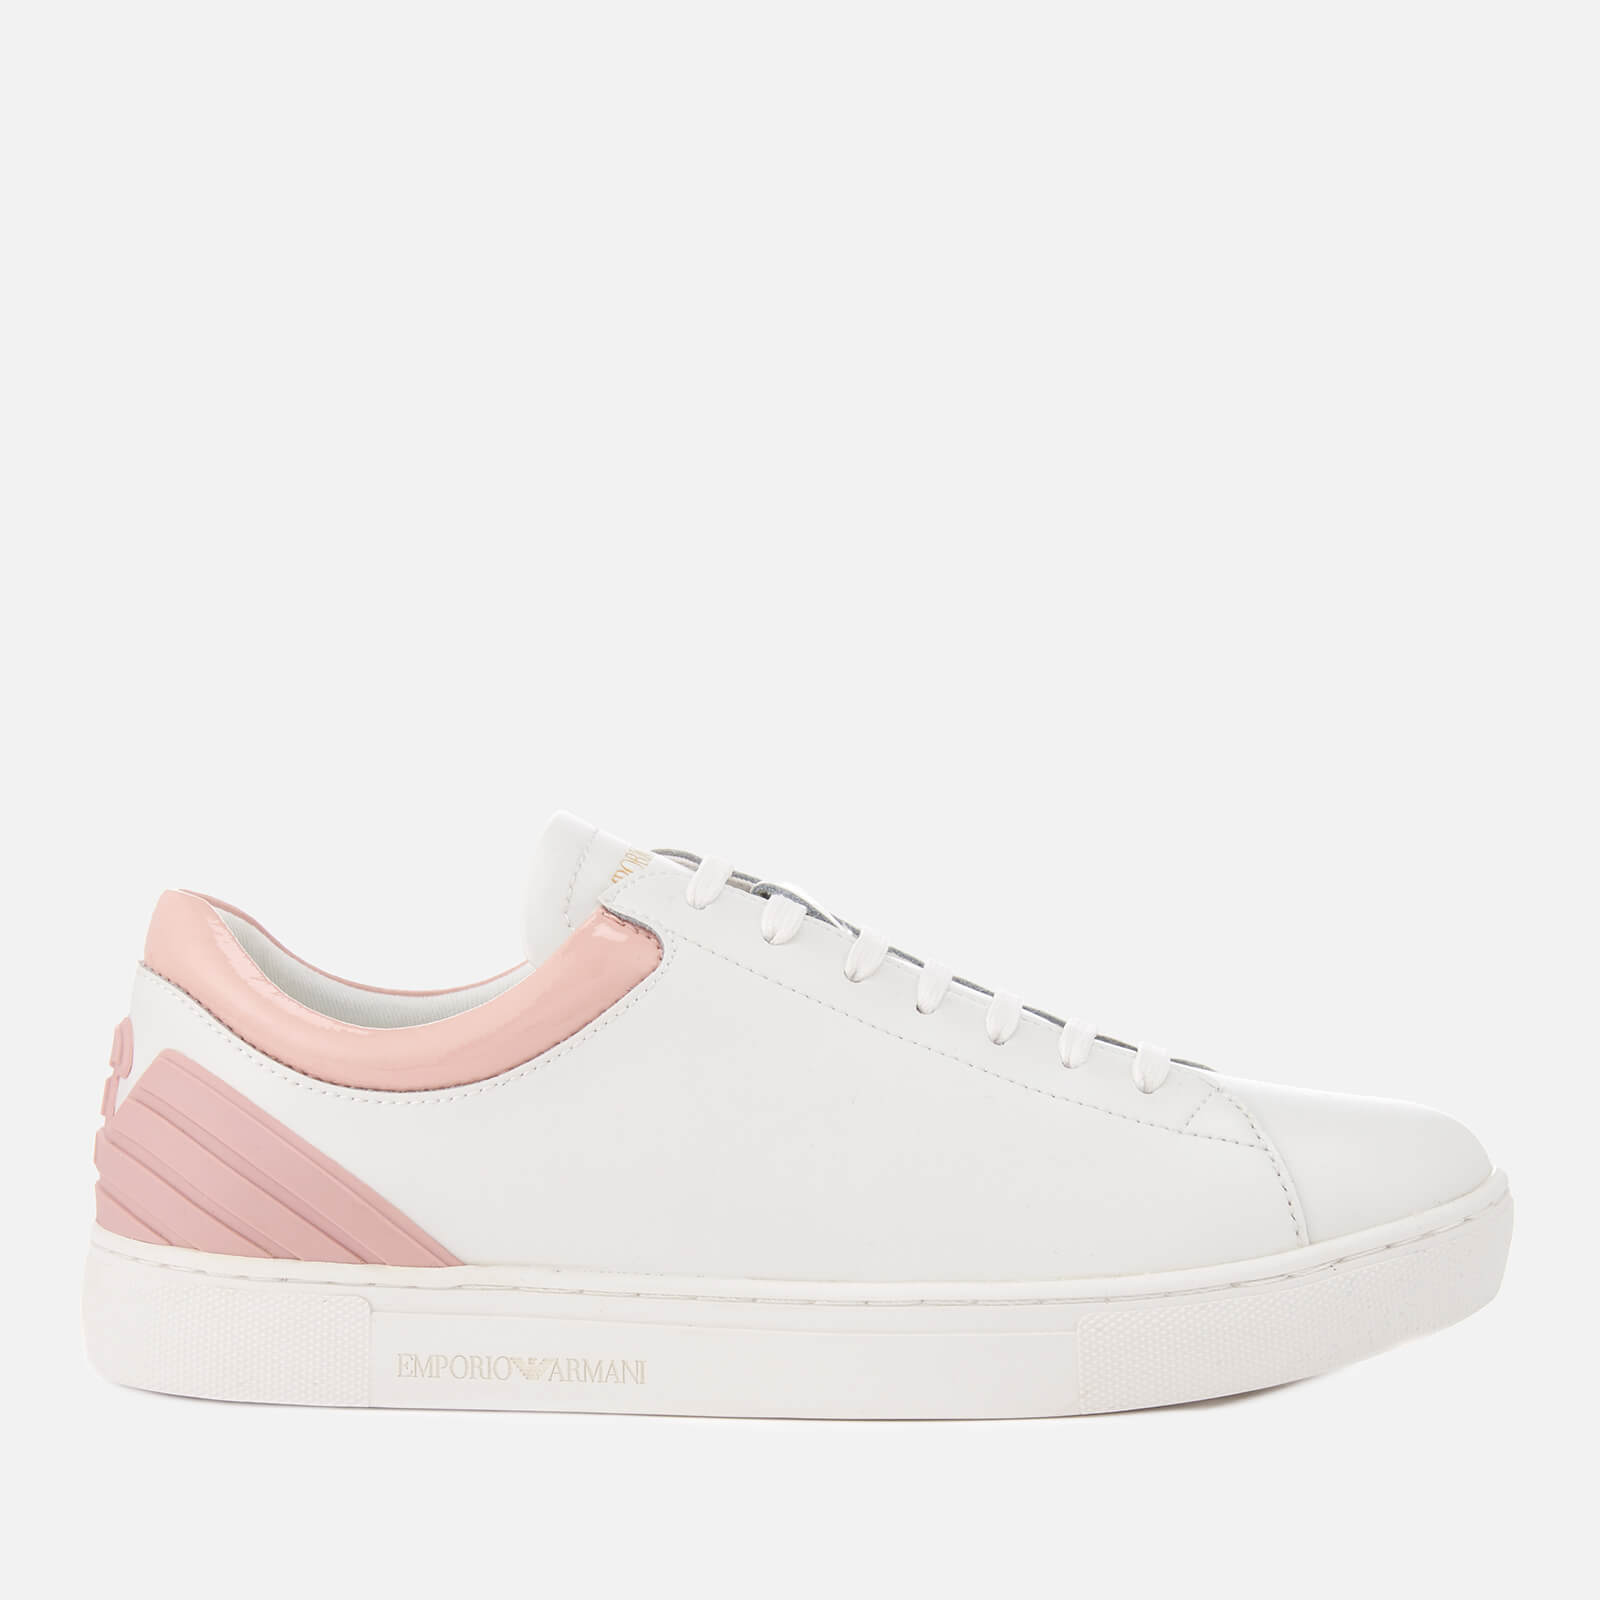 28c5a346646 Emporio Armani Women s Alana Trainers - White Nude - Free UK Delivery over  £50